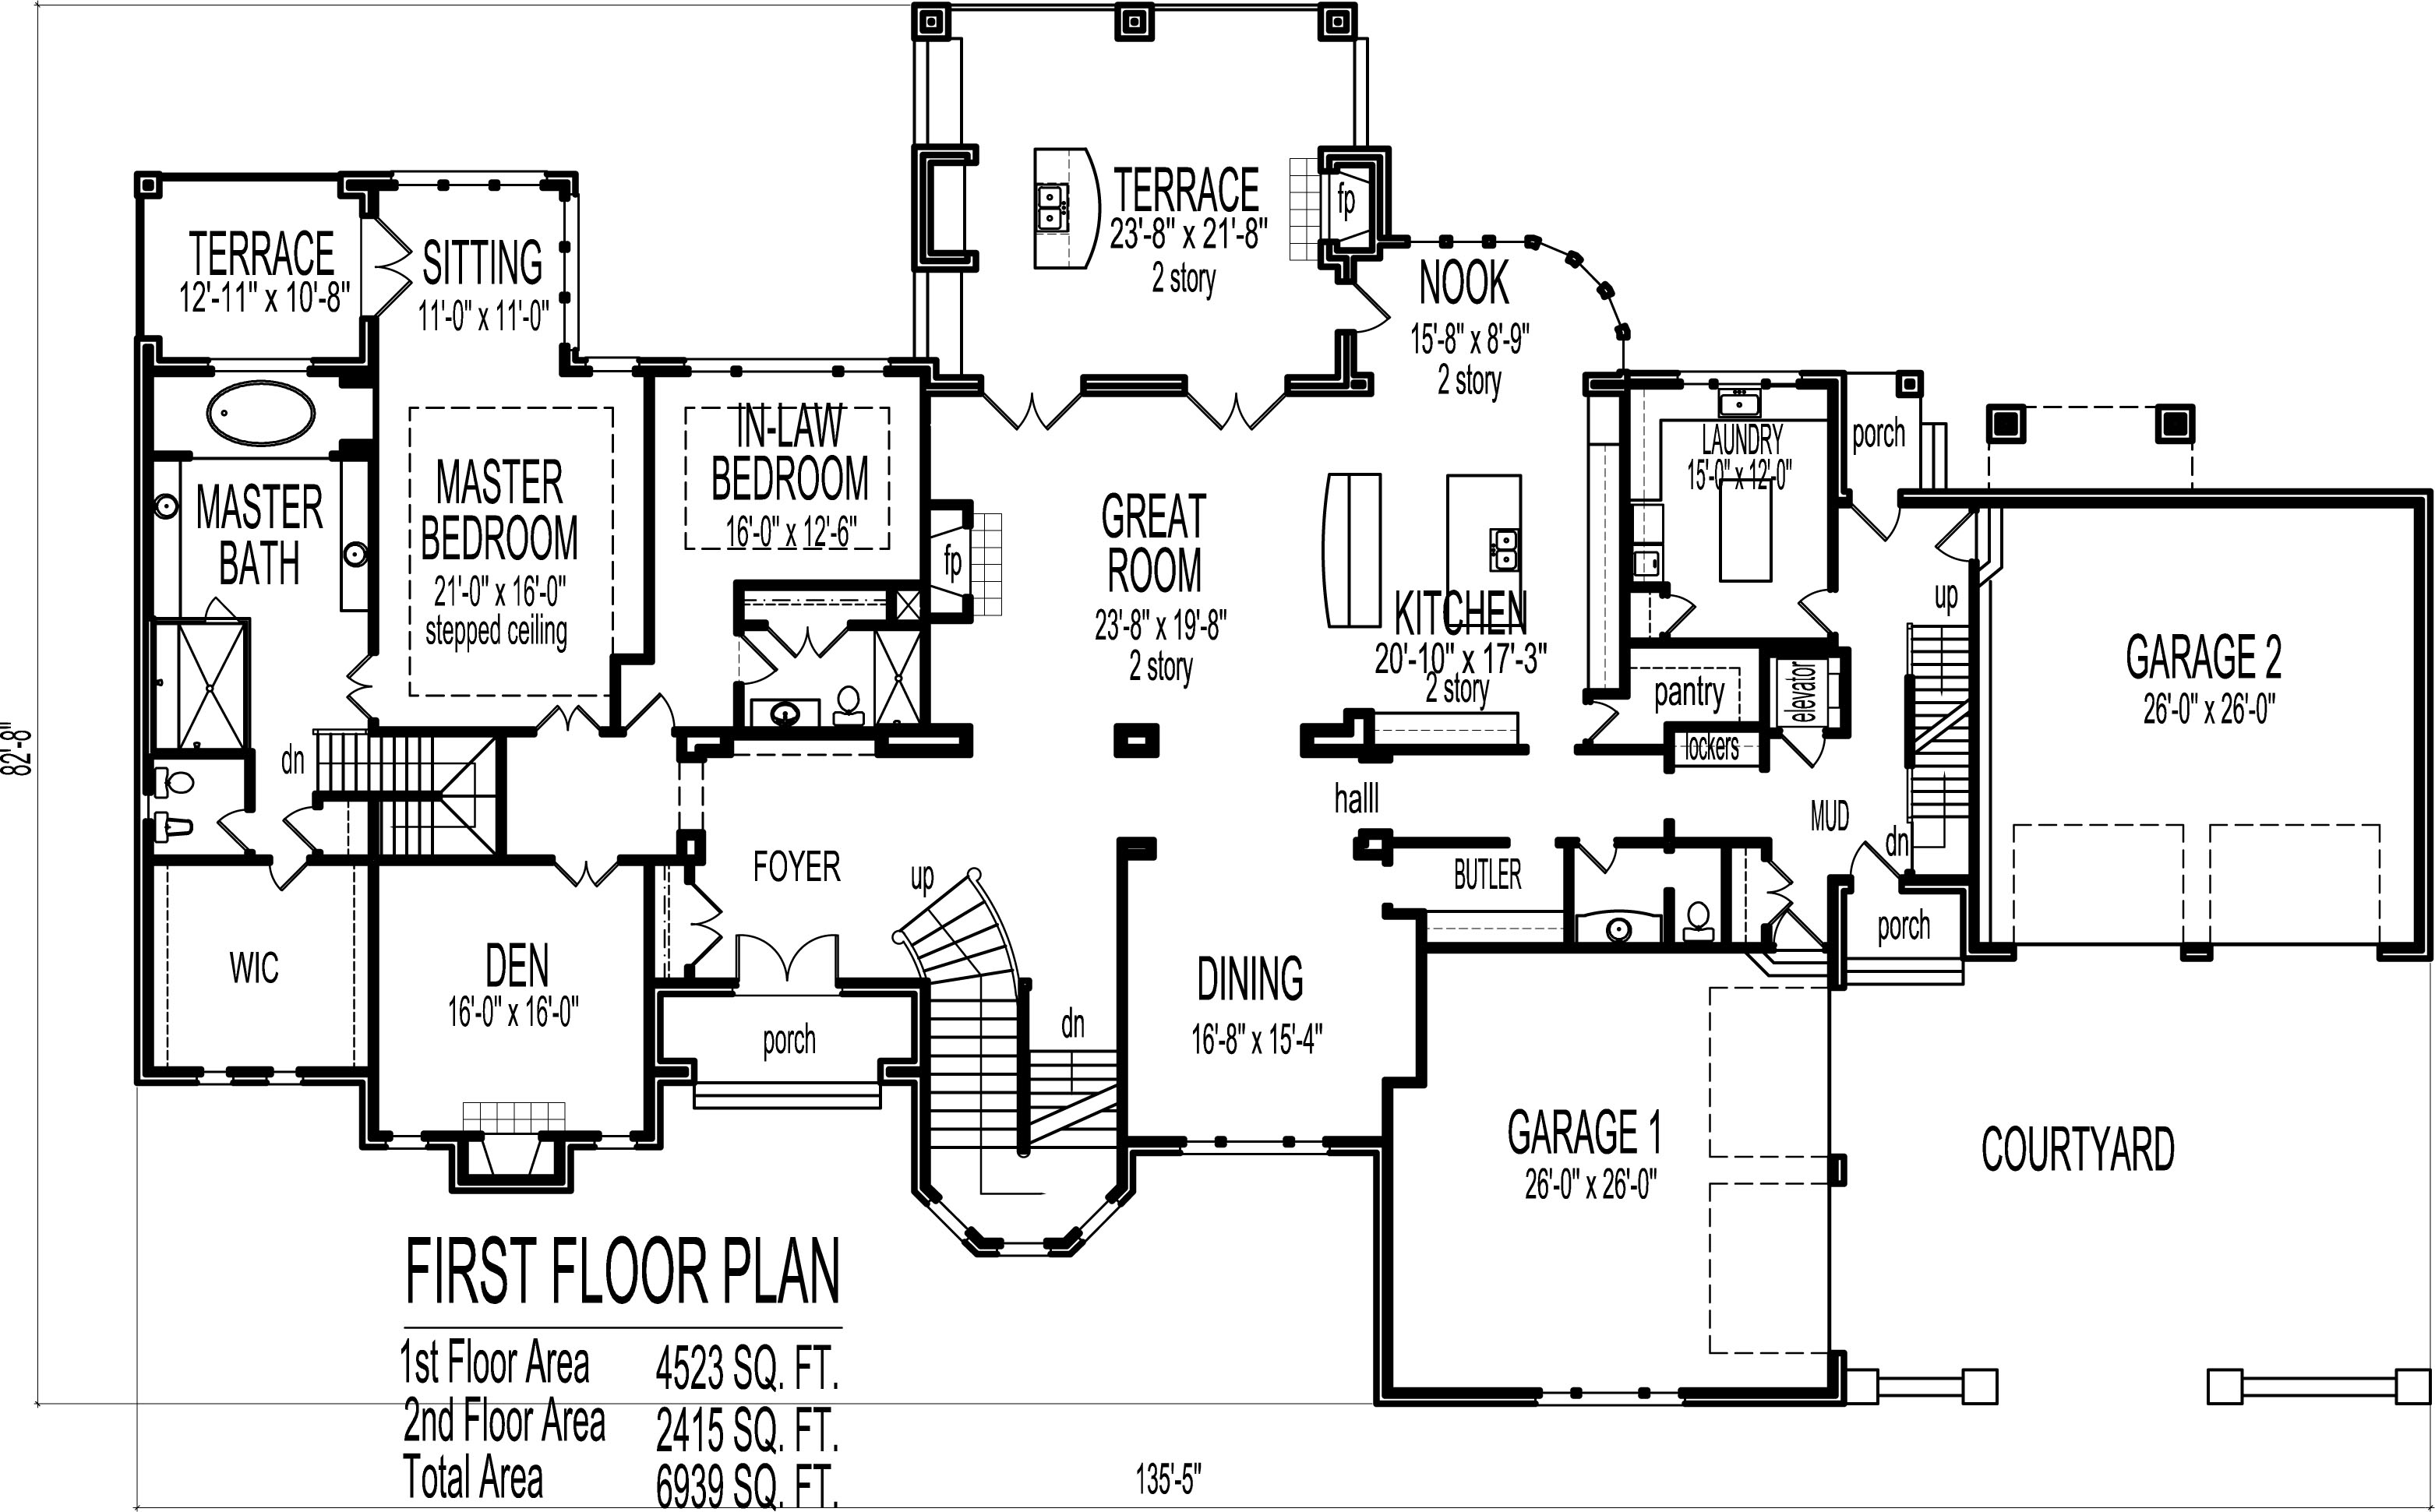 Mansion House Floor Plans Blueprints 6 Bedroom 2 Story